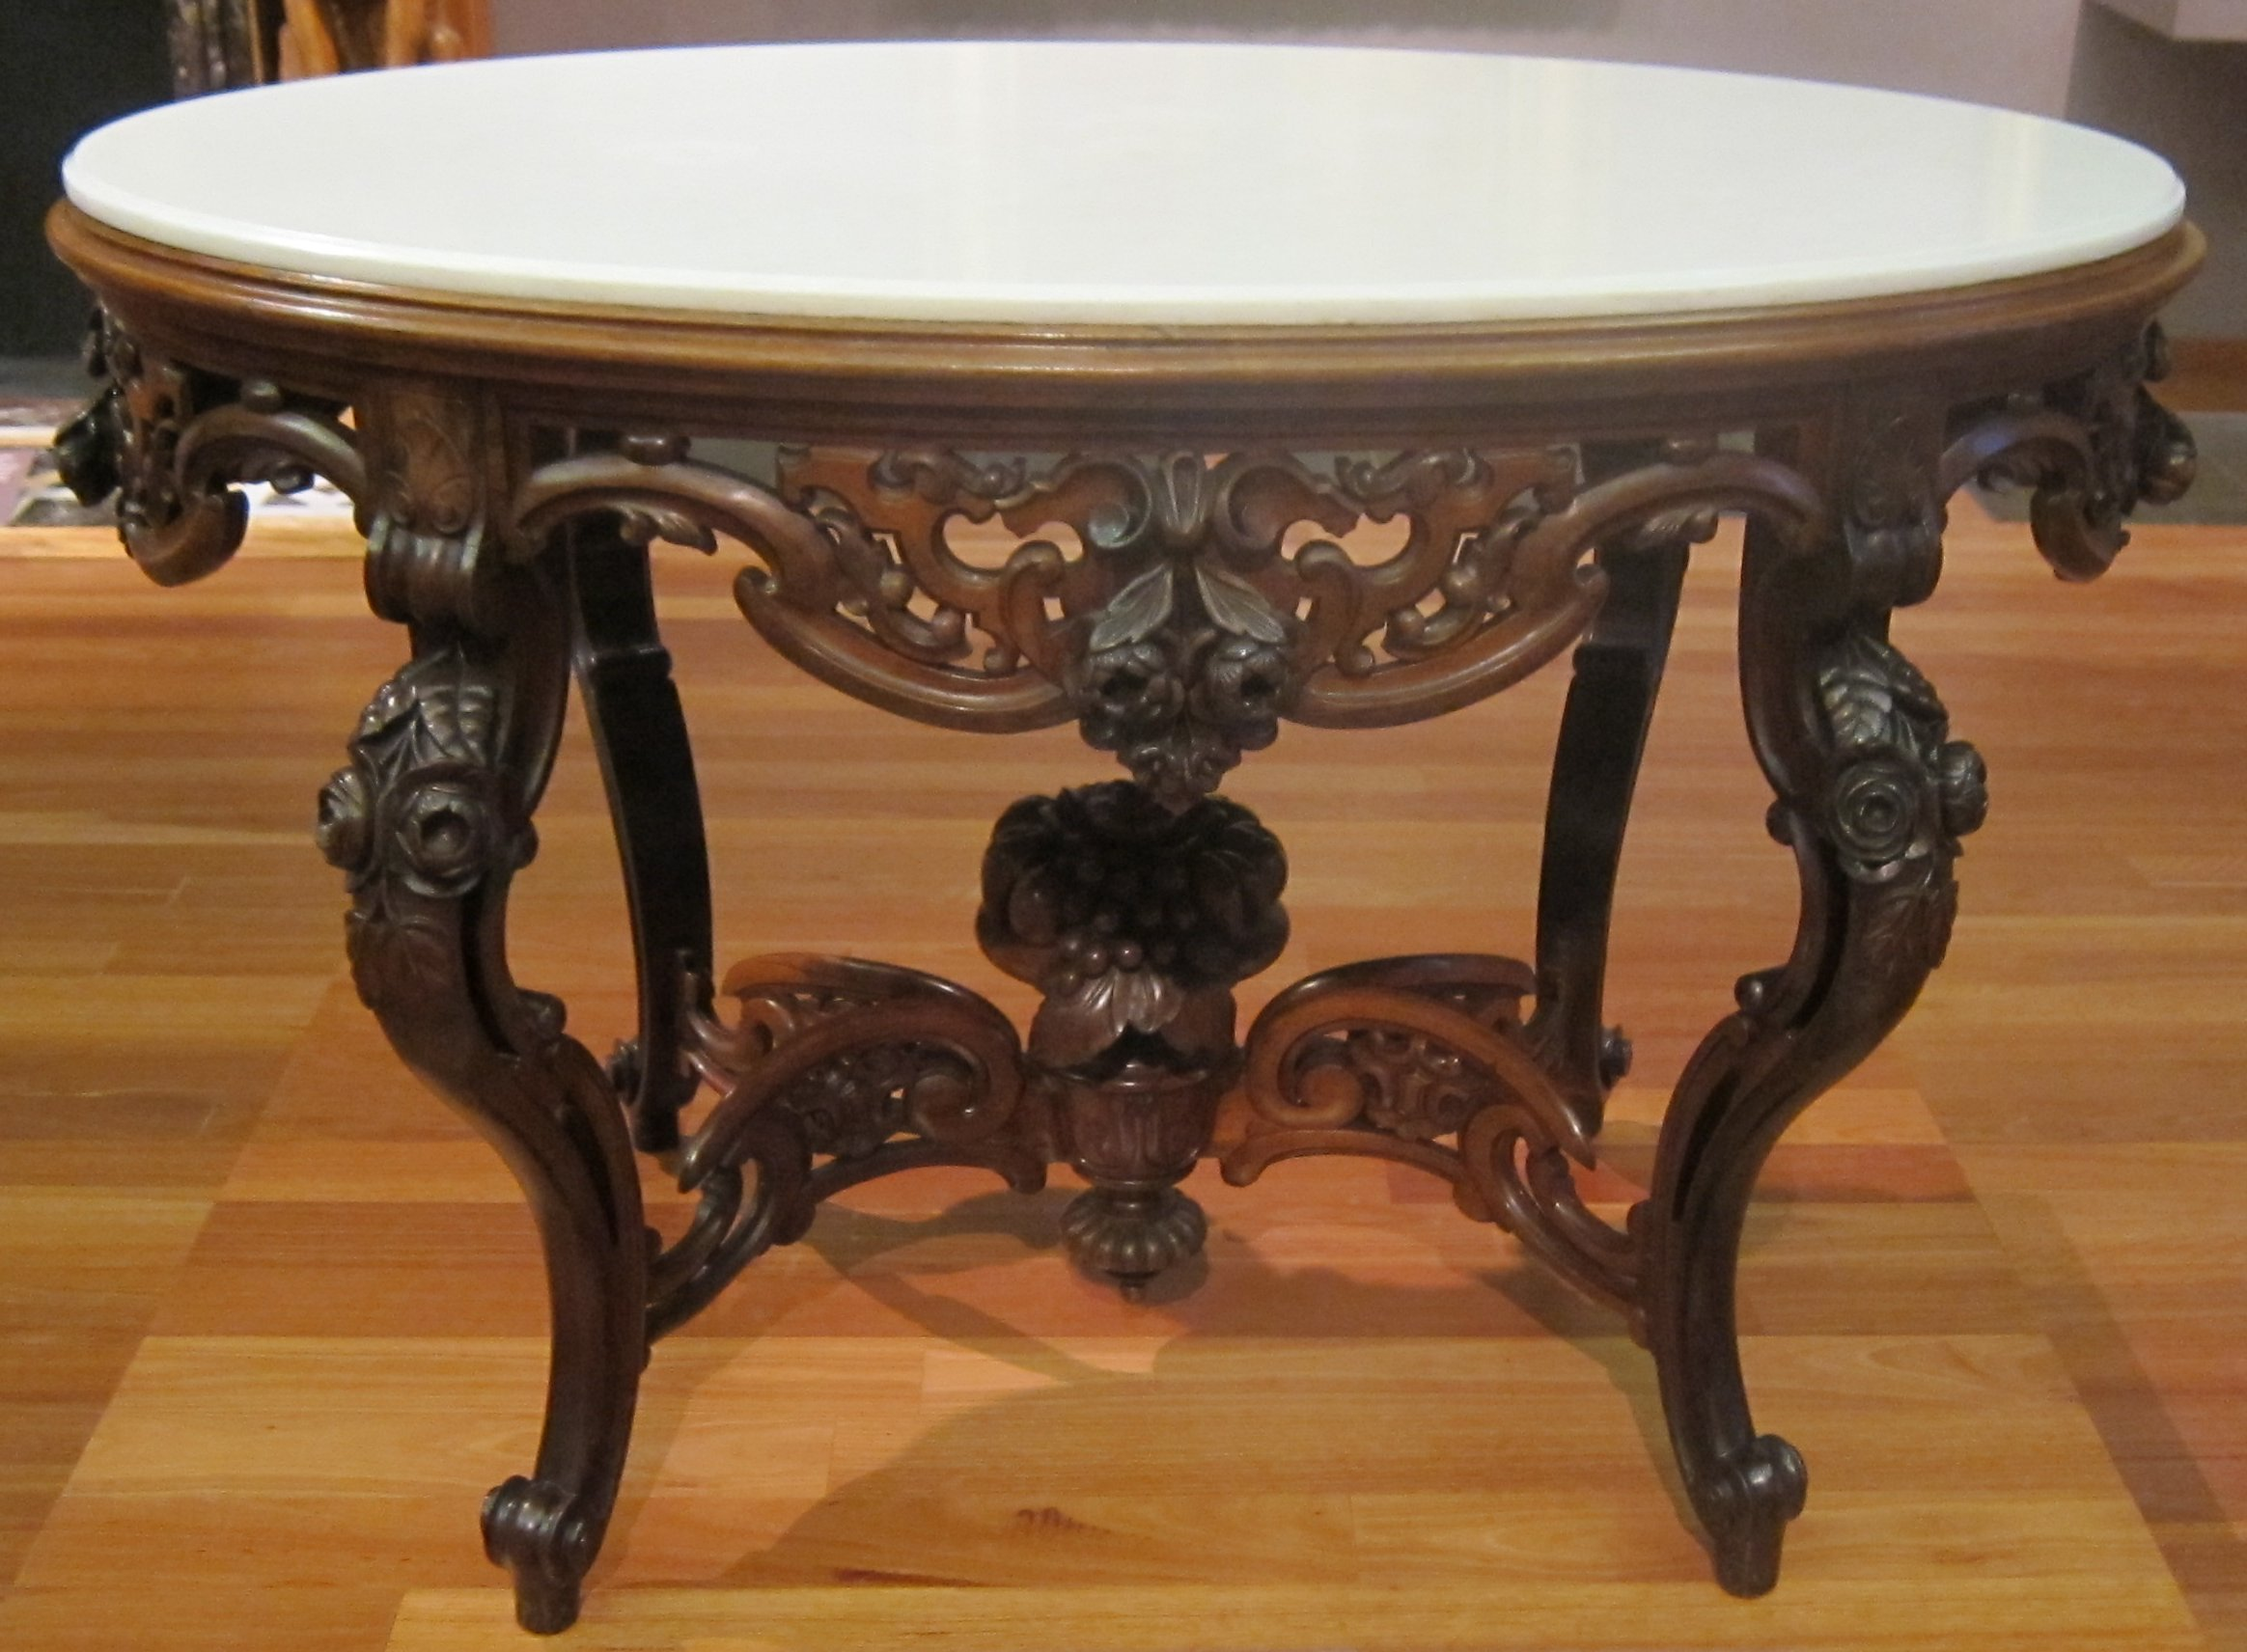 File parlor table made by joseph meeks and sons c 1860 for Table design history